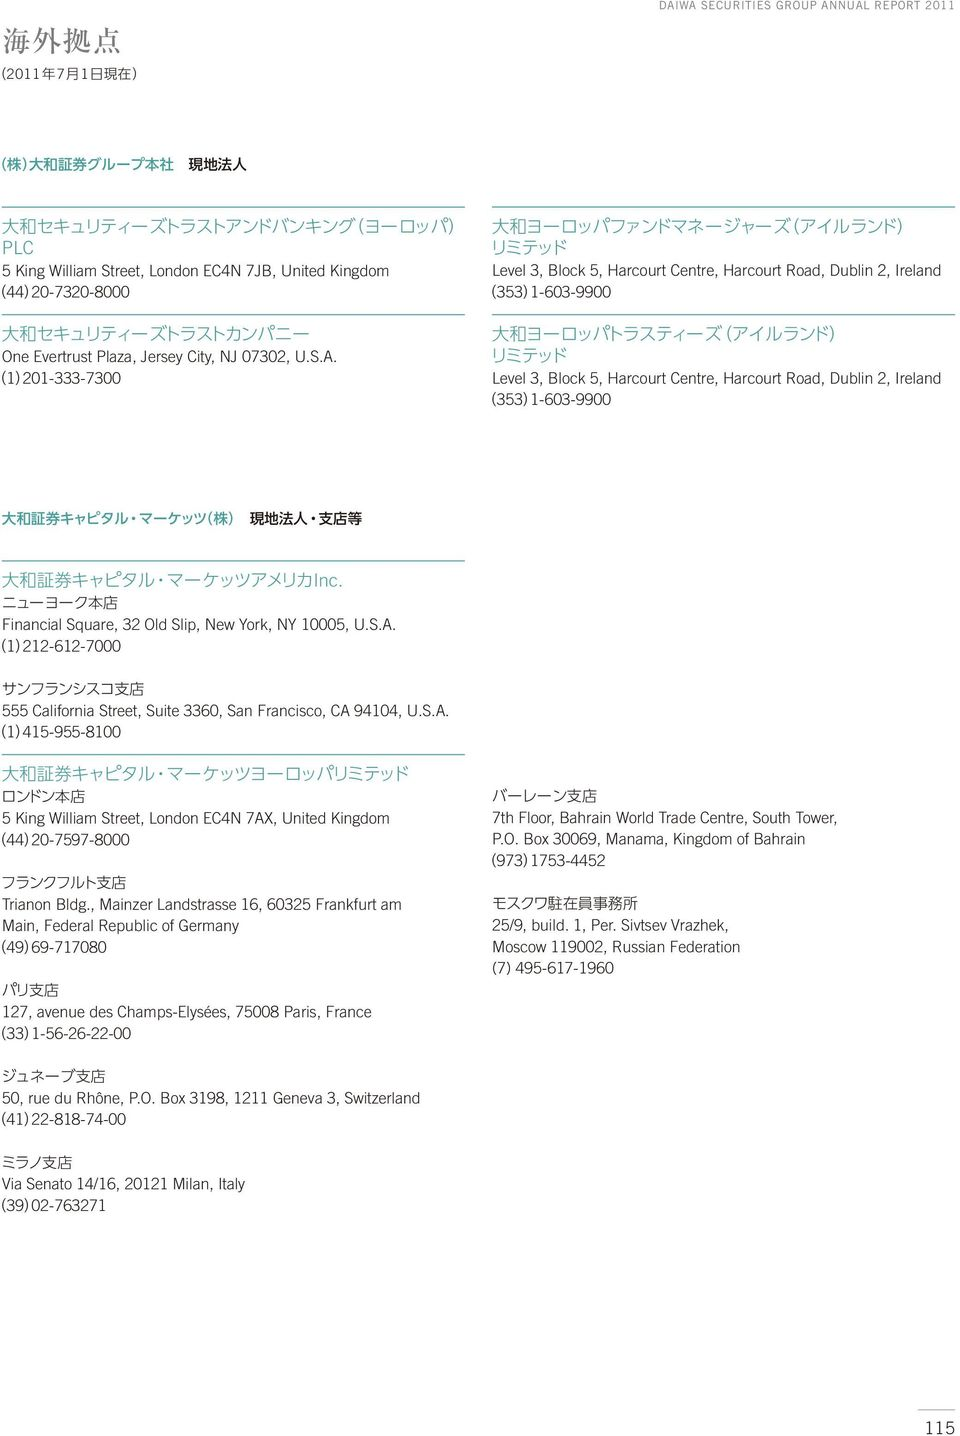 Financial Square, 32 Old Slip, New York, NY 10005, U.S.A. 1 212-612-7000 555 California Street, Suite 3360, San Francisco, CA 94104, U.S.A. 1 415-955-8100 5 King William Street, London EC4N 7AX, United Kingdom 44 20-7597-8000 Trianon Bldg.